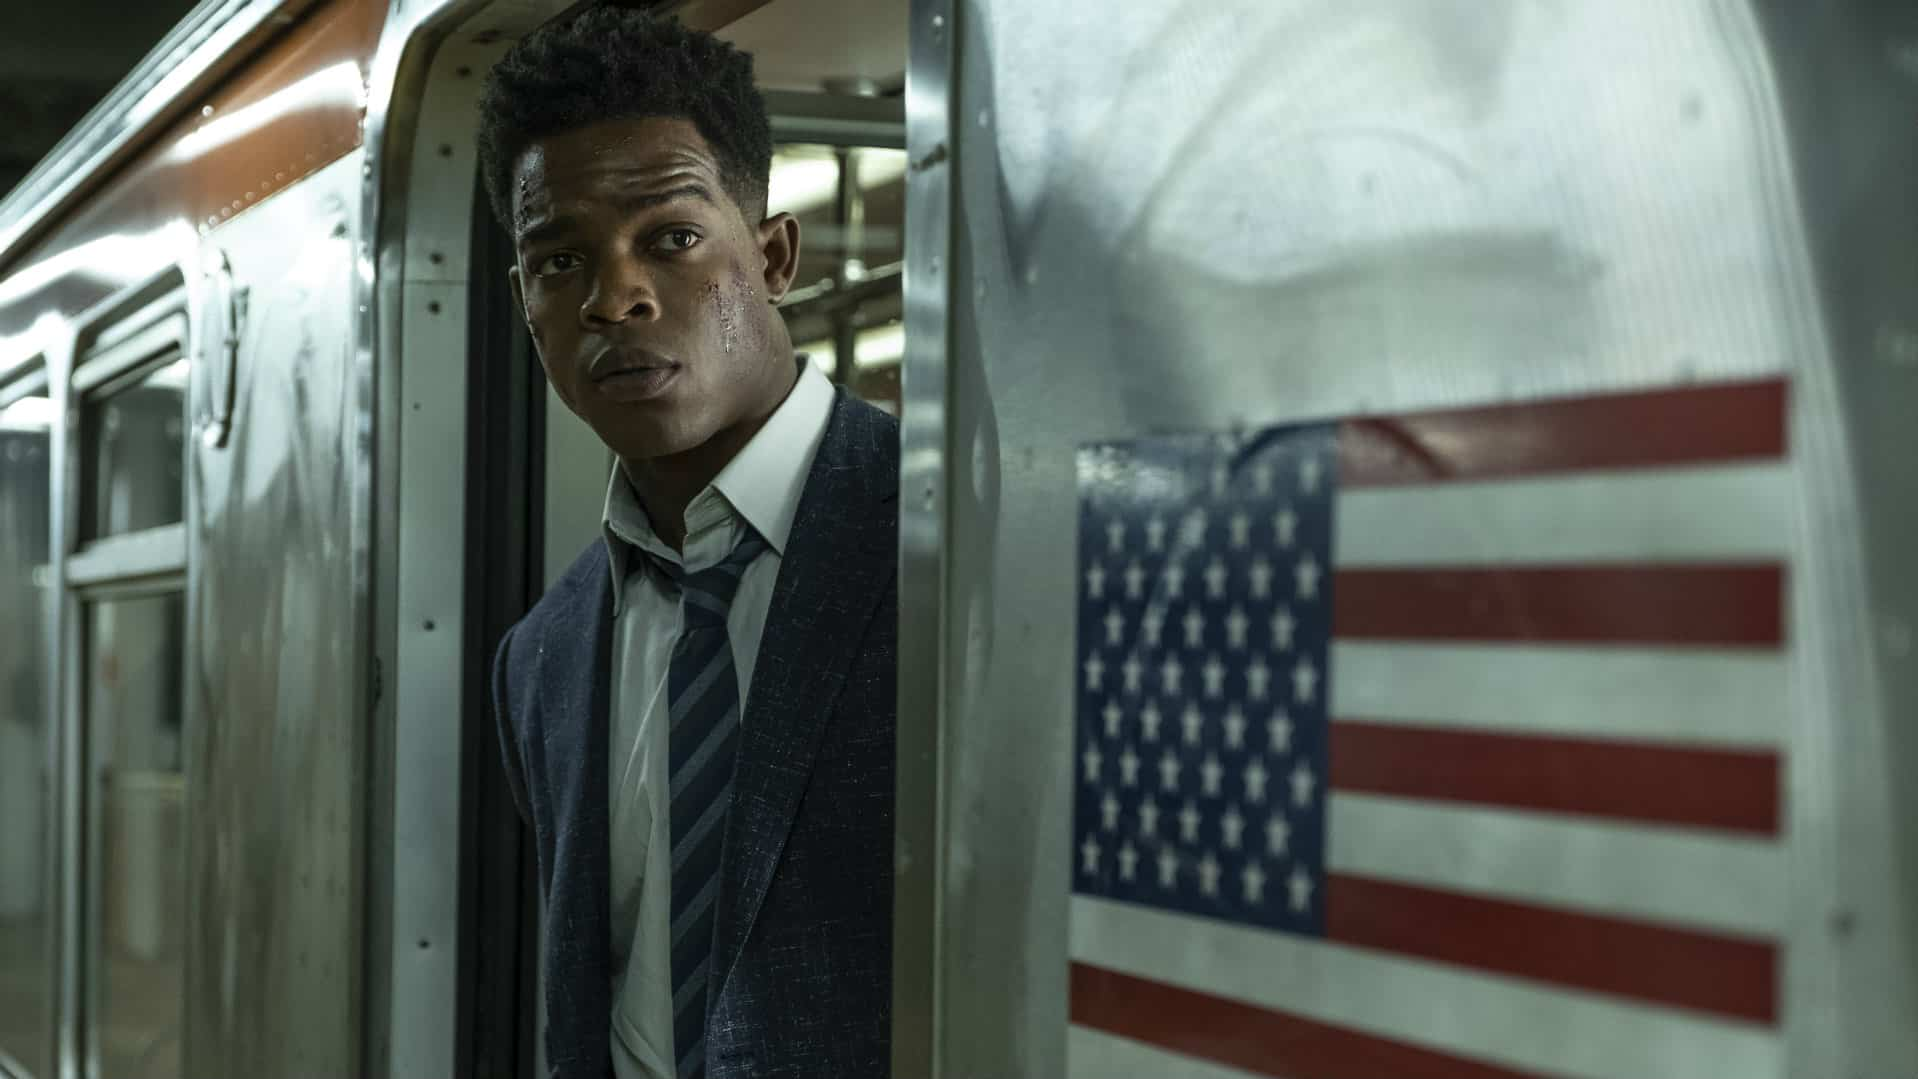 City of Crime recensione del film con Chadwick Boseman